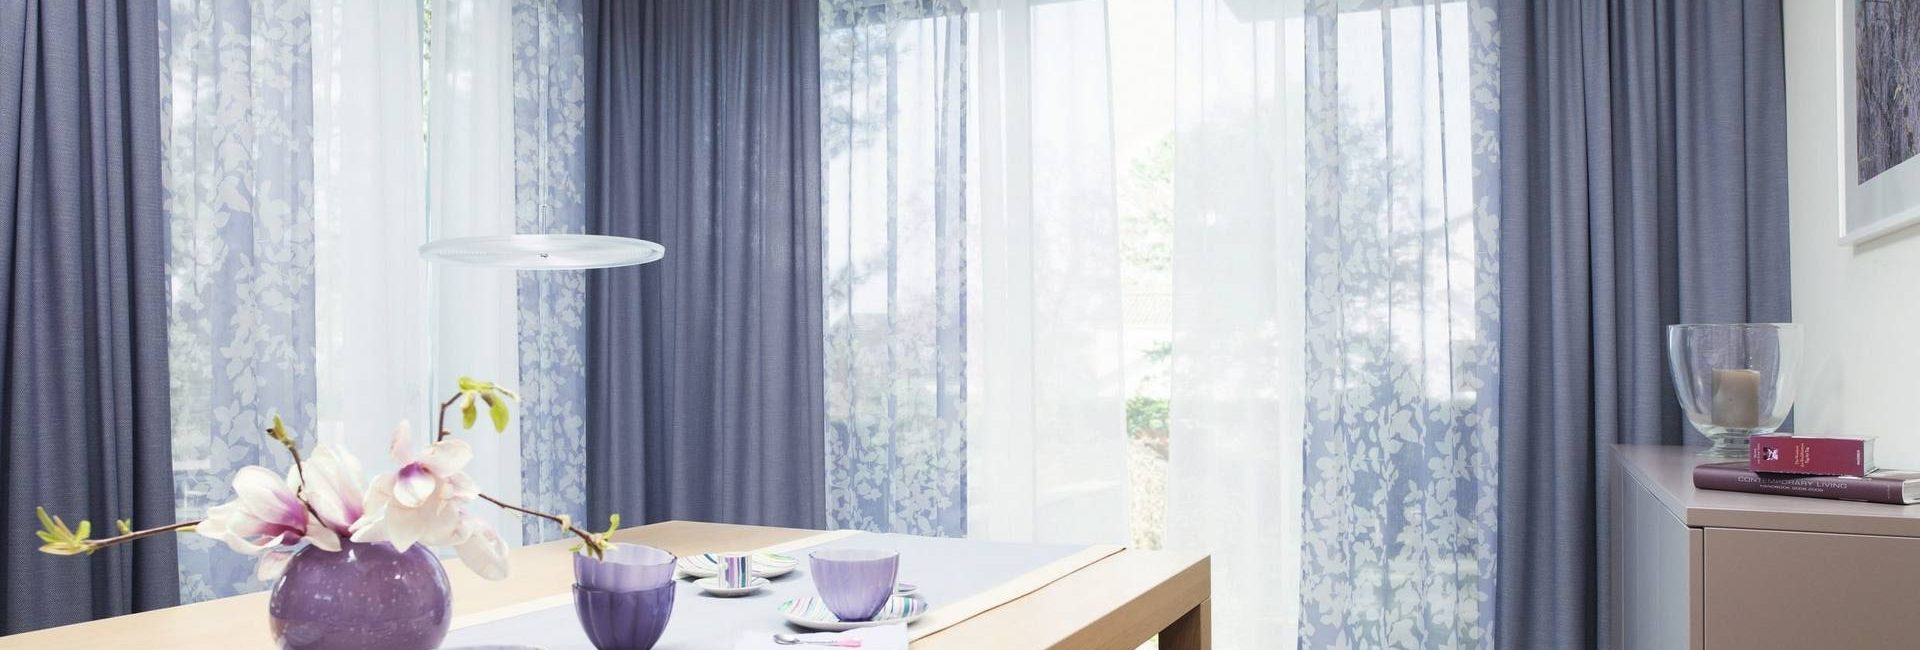 Ado voile curtains in Cassis colour - available from Fabric Gallery and Interiors in Dunnington, York